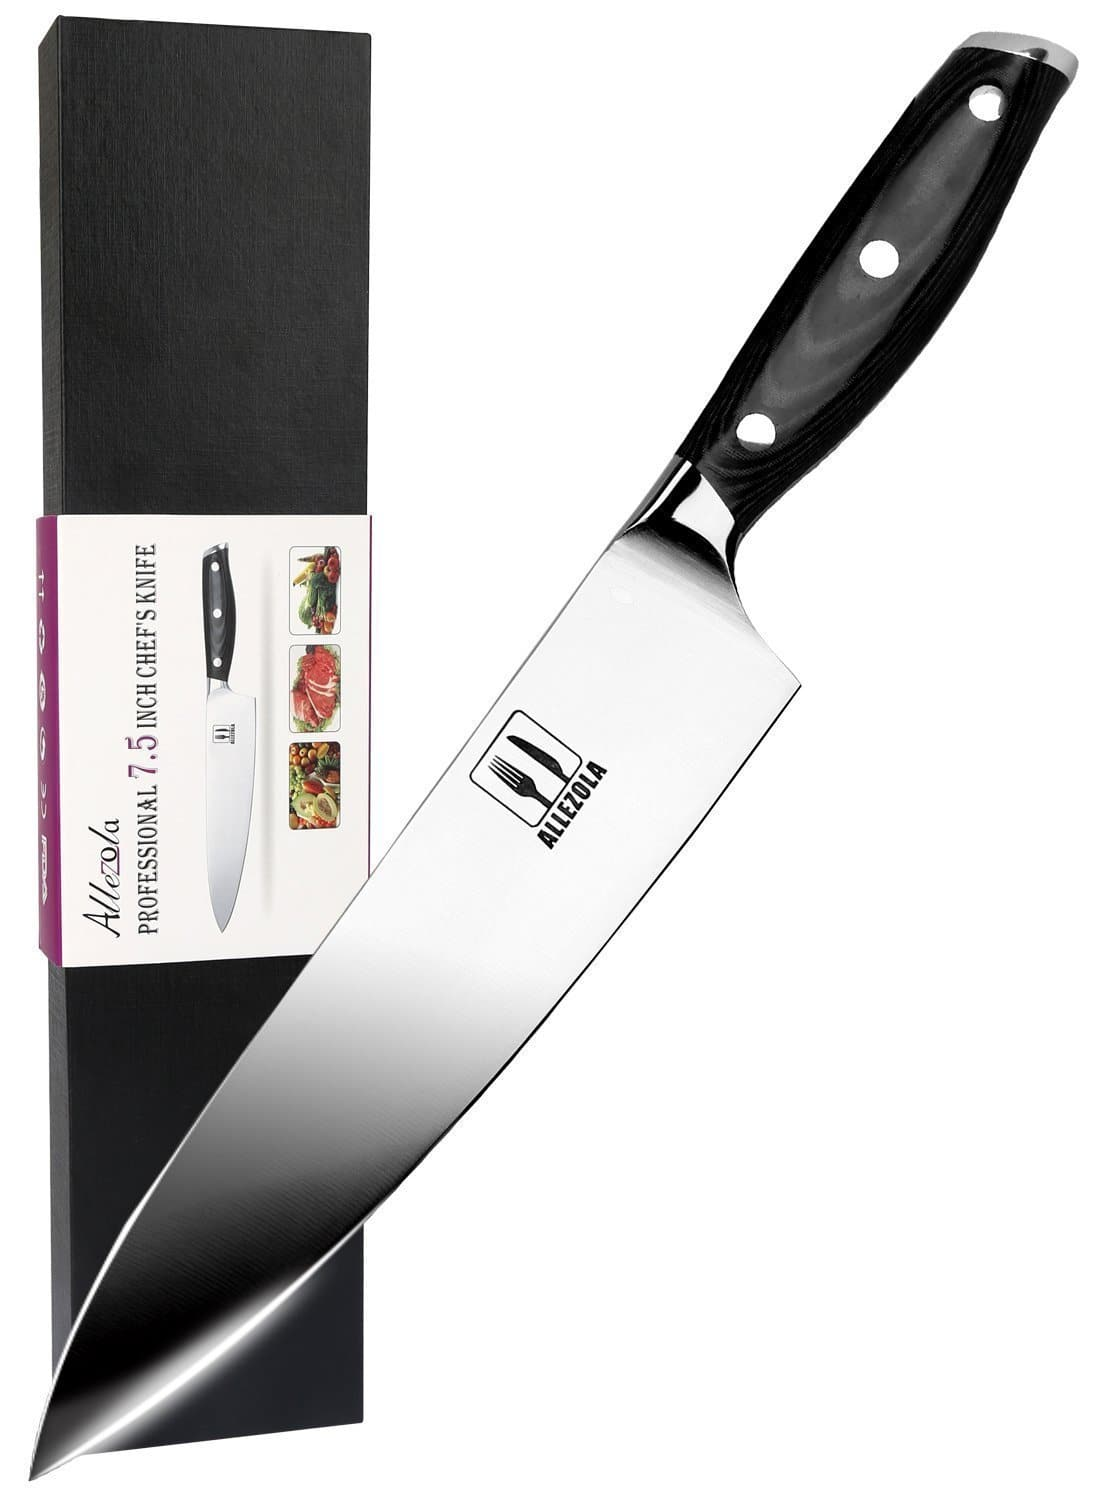 7.5 Inch German High Carbon Stainless Steel Chef's Knife $25.99 @ Amazon